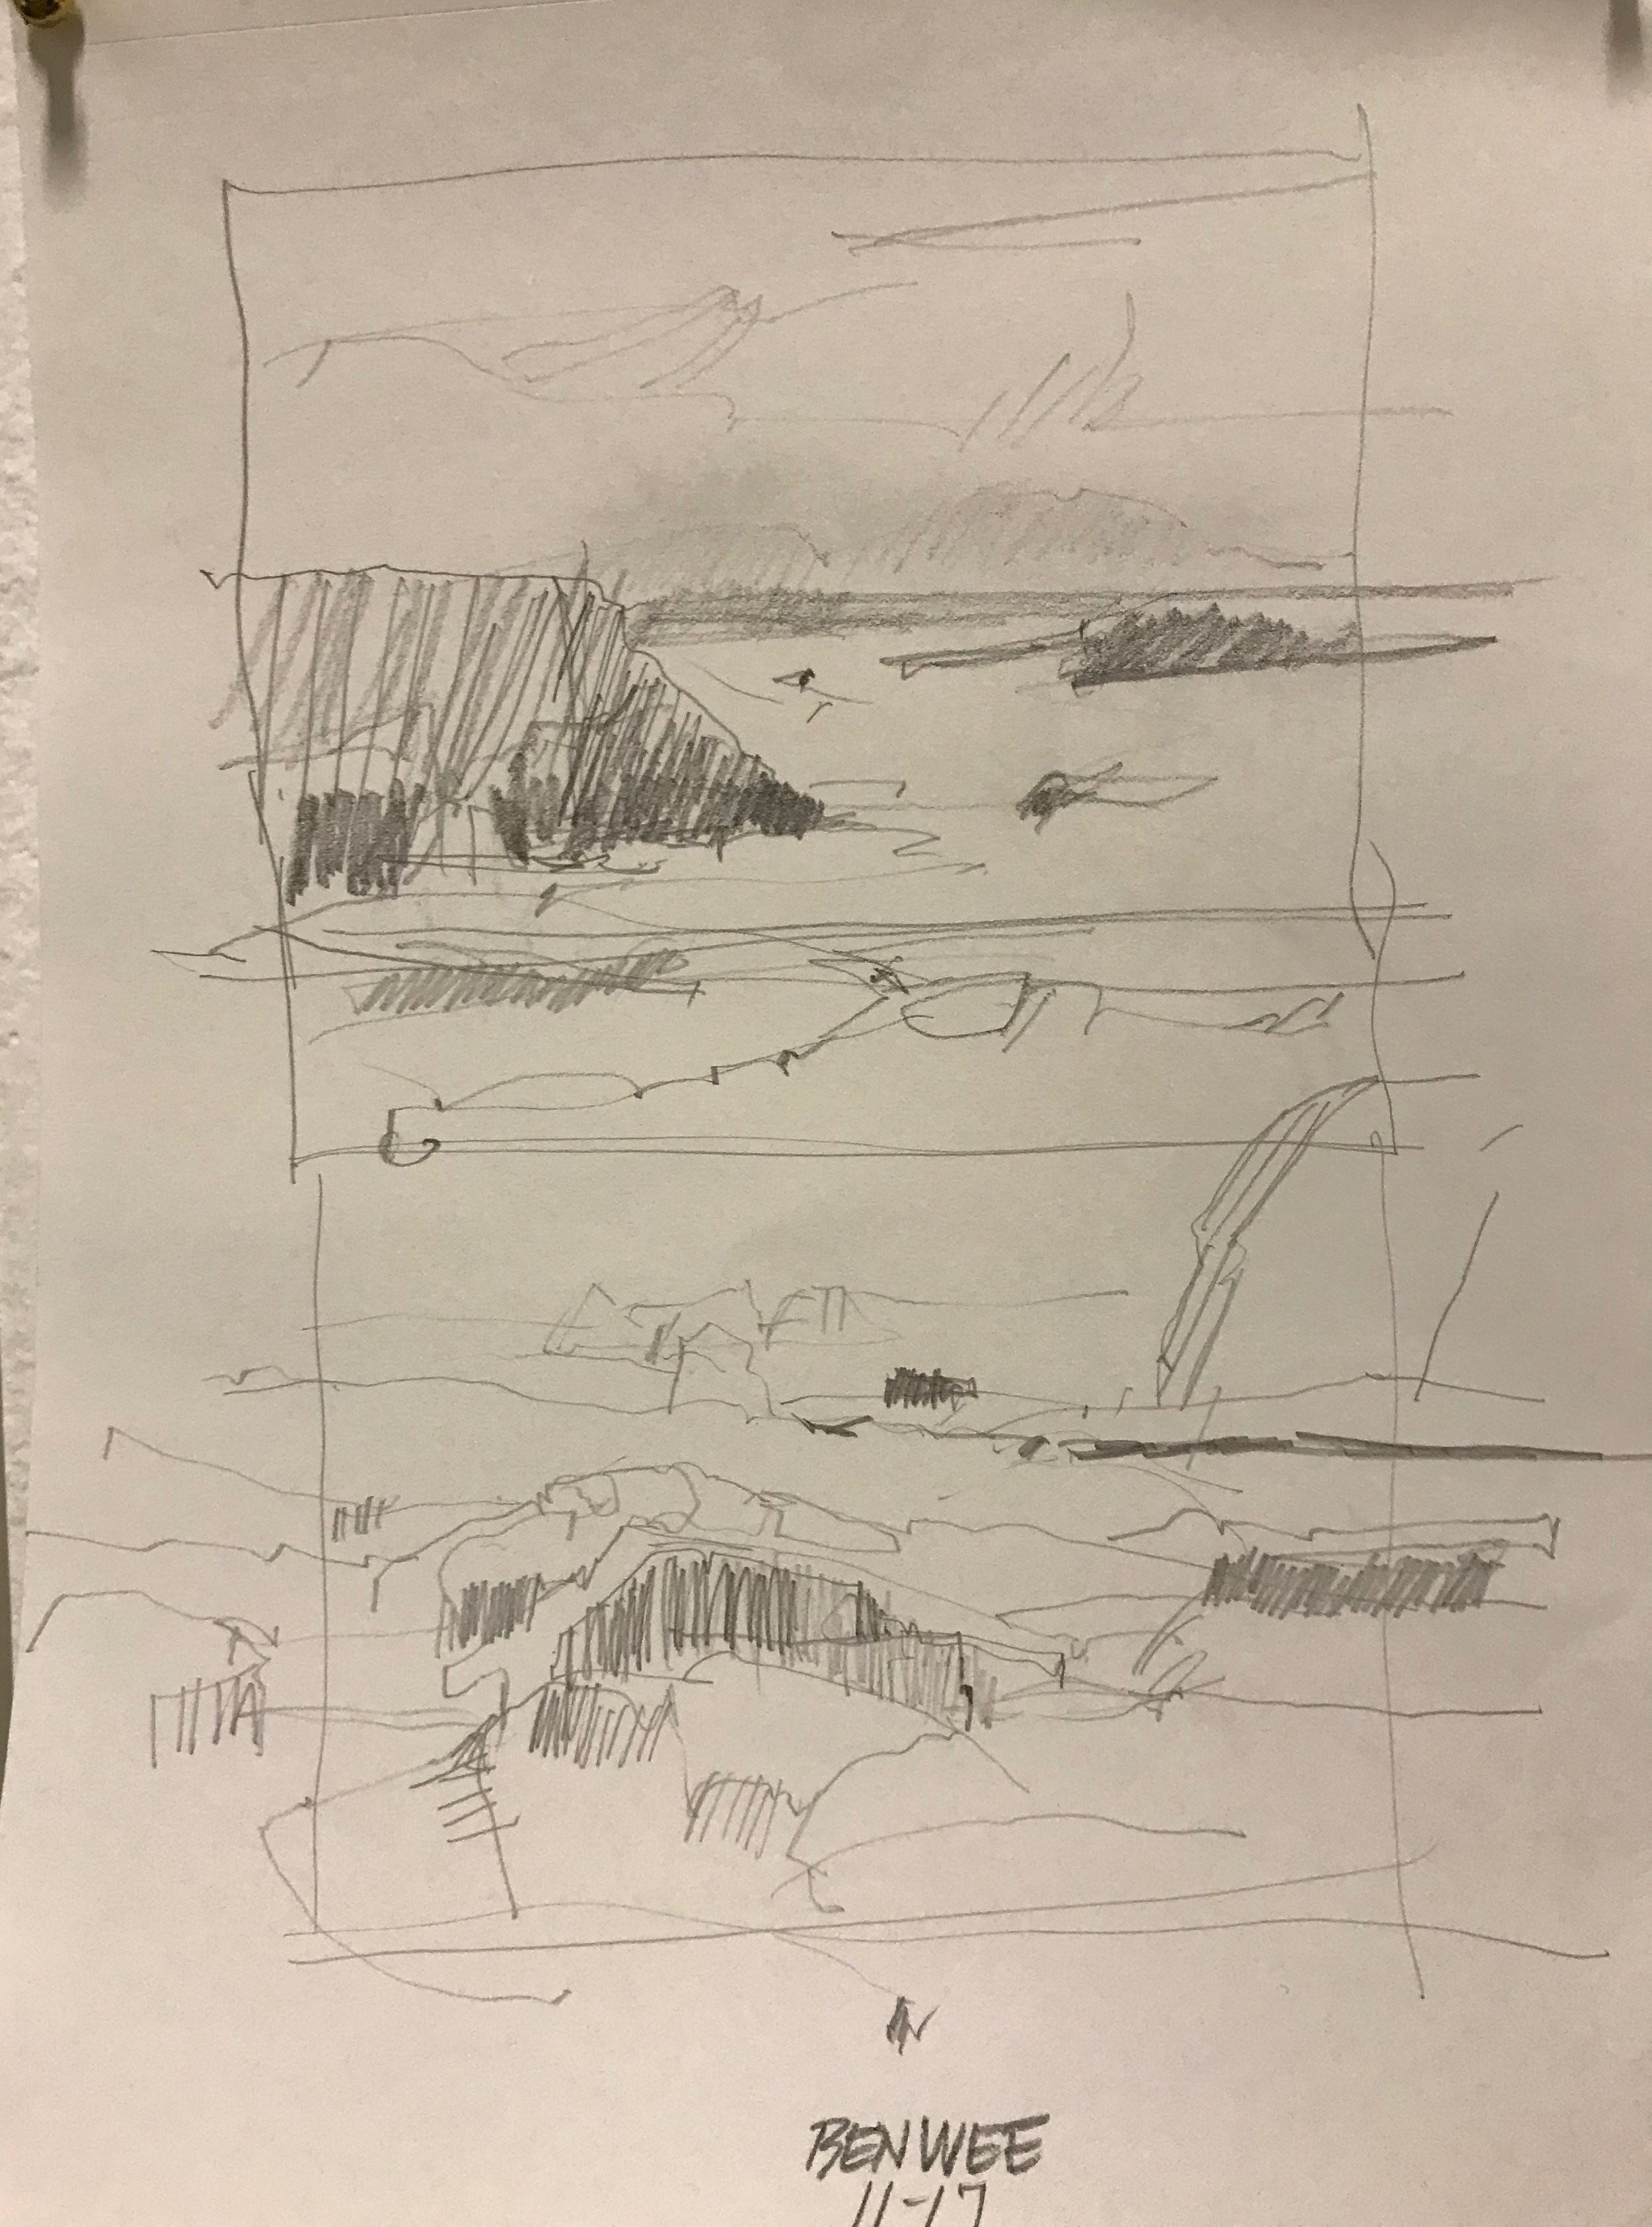 top sketch - view to my left